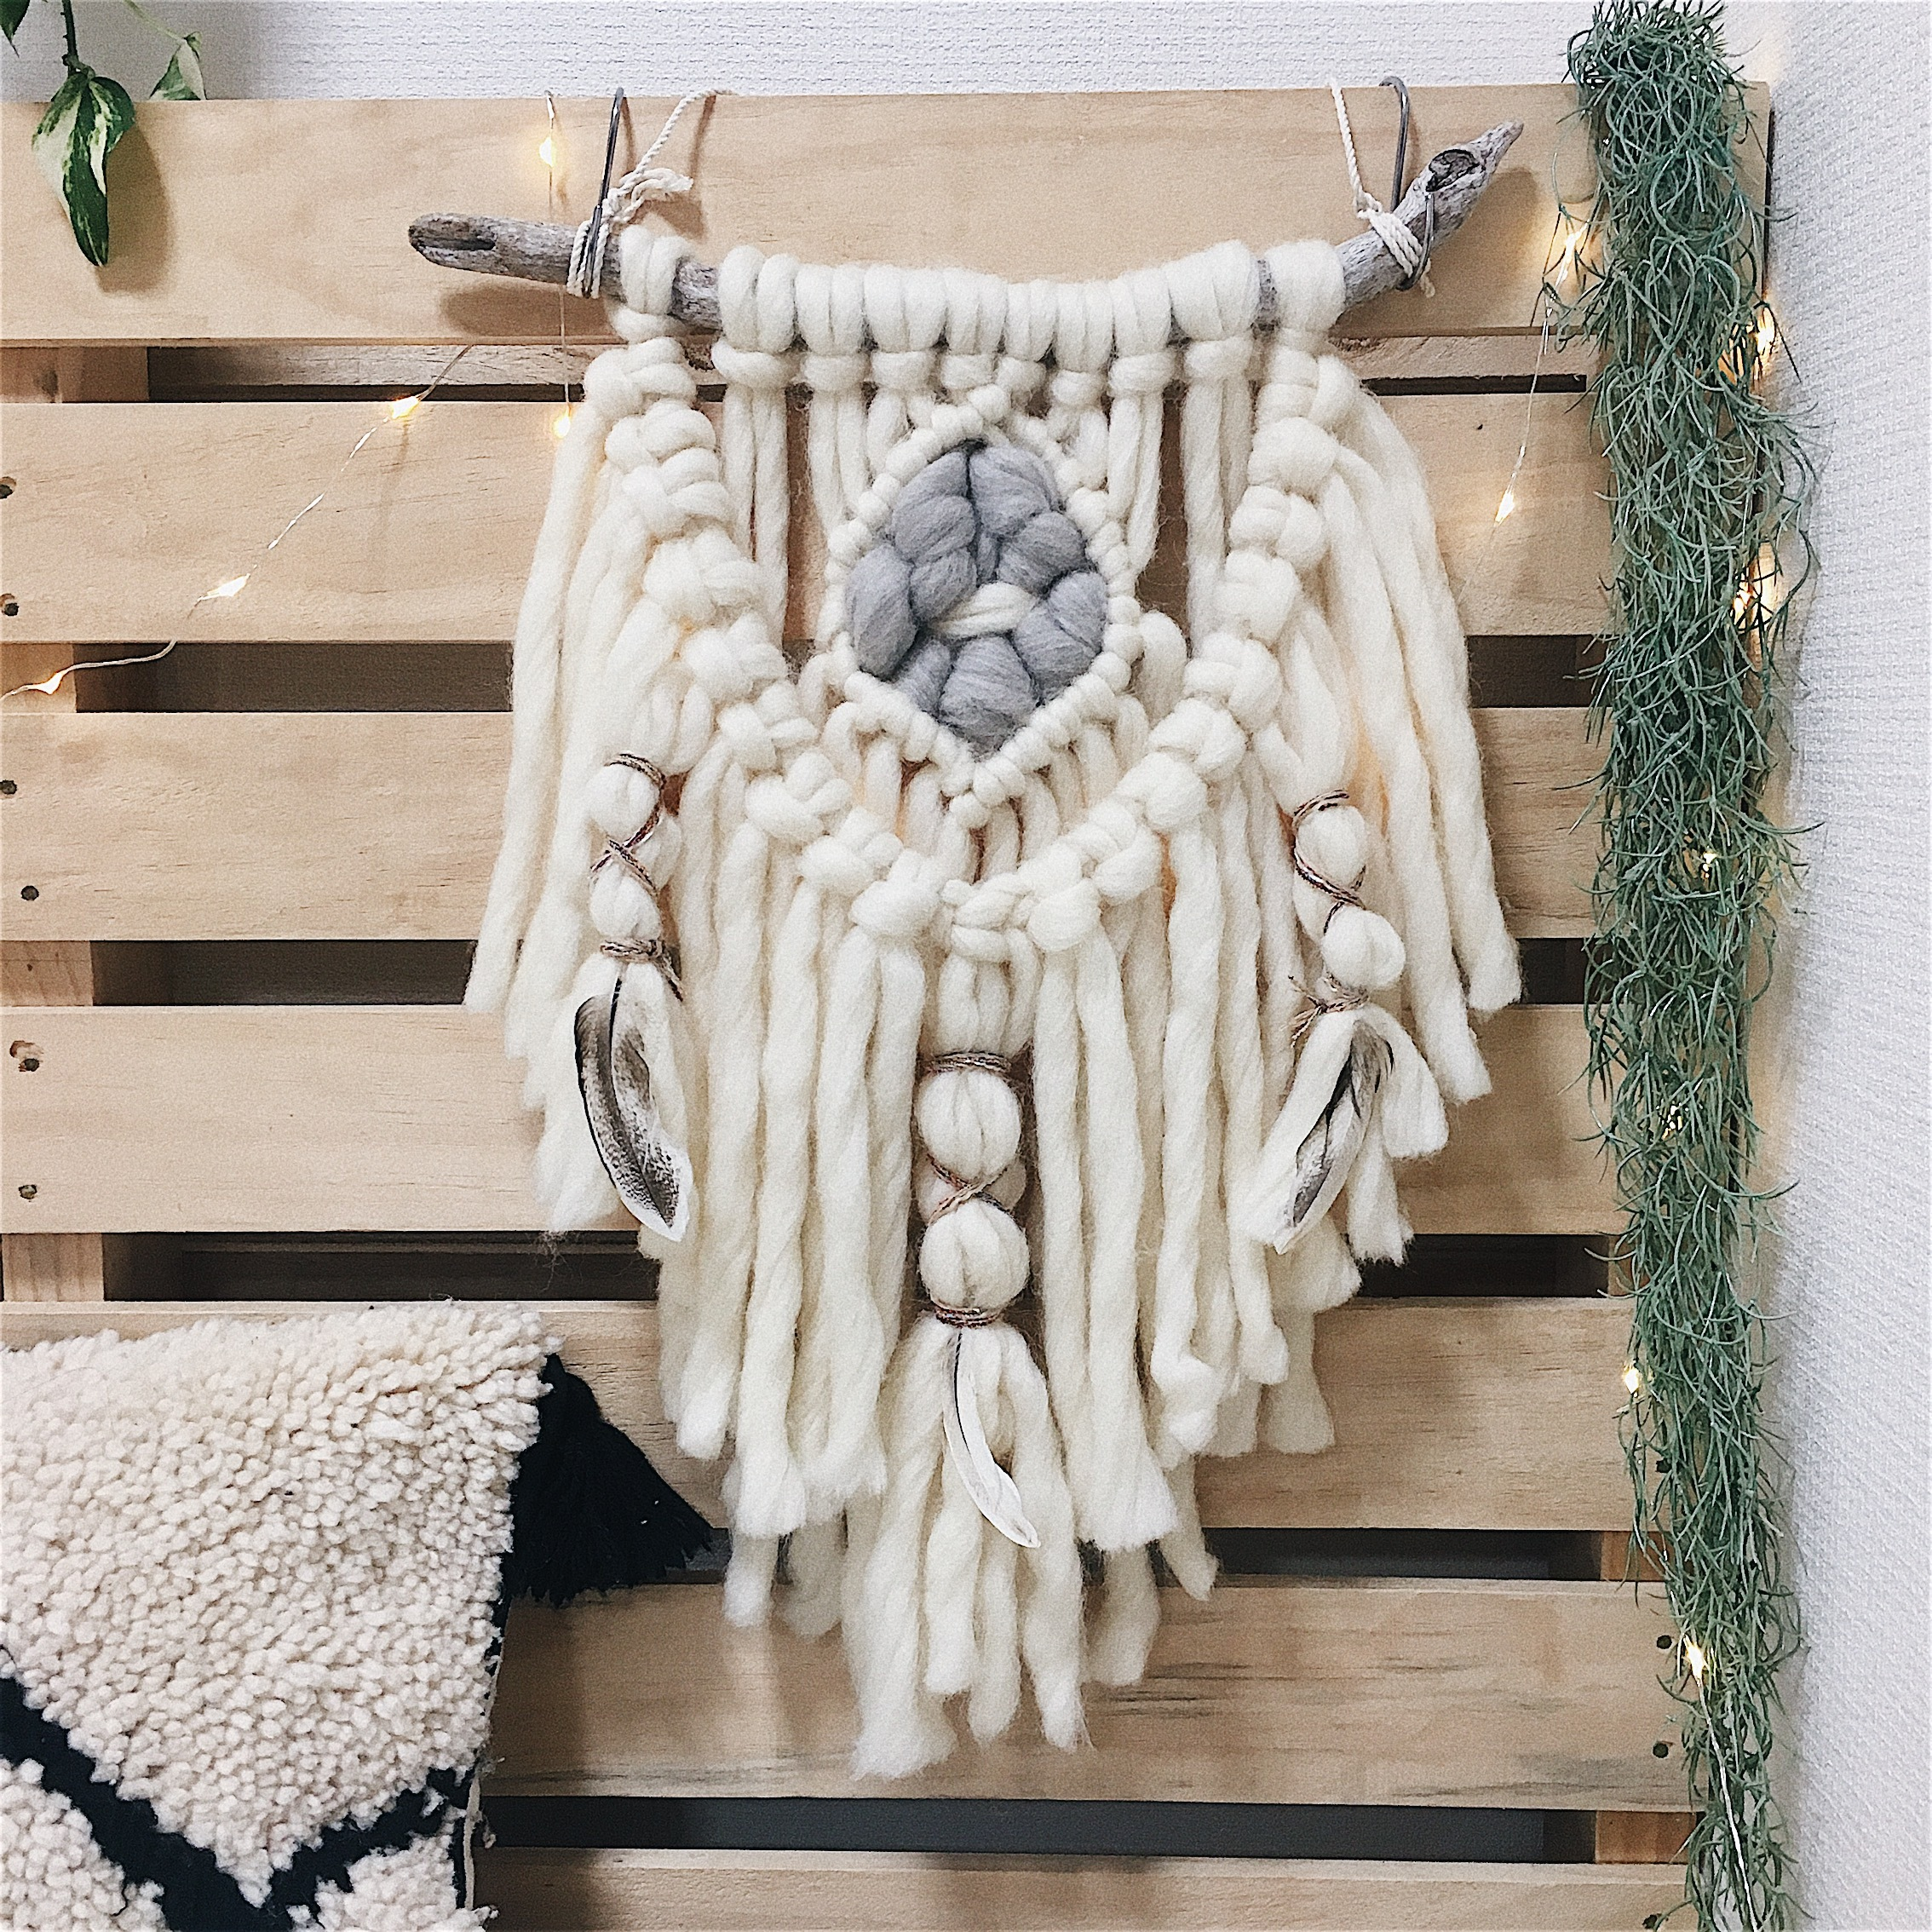 【送料無料】Wool macrame wallhanging - native american -